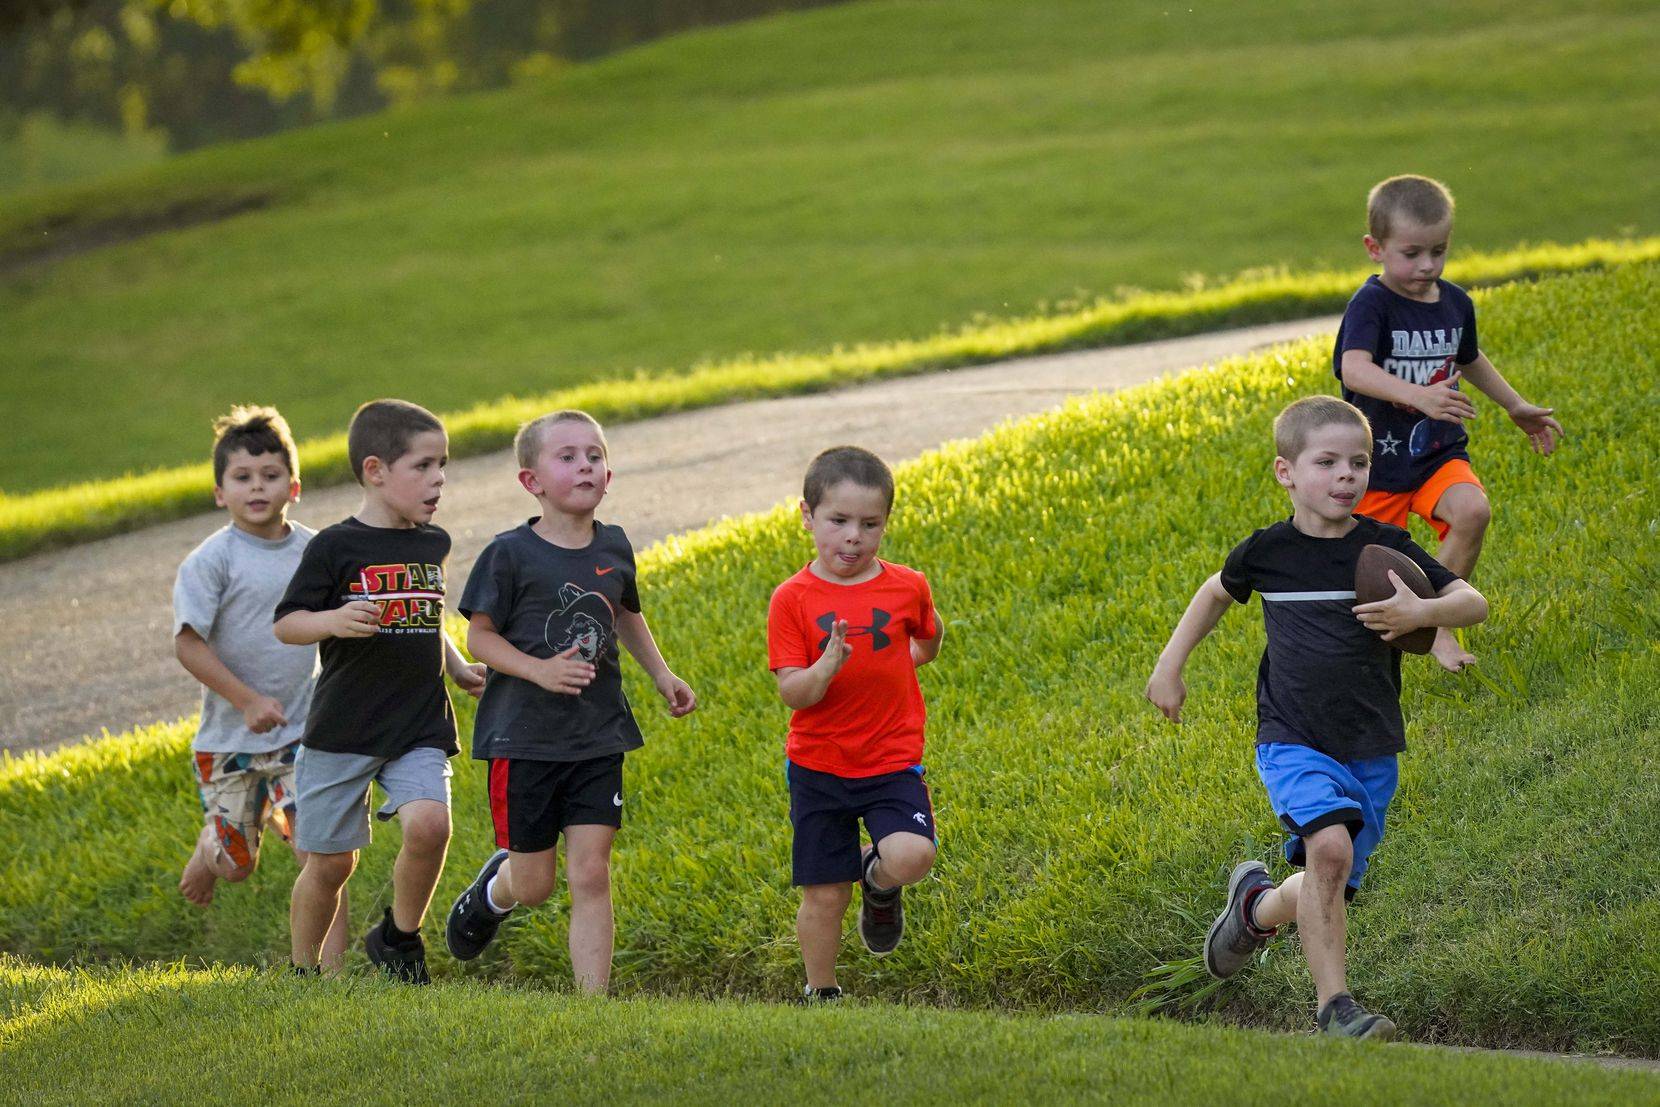 Grant Bass, 6, races down the sidewalk with a football while chased by other neighborhood children in Canyon Creek subdivision on Thursday, July 2, 2020, in Richardson.